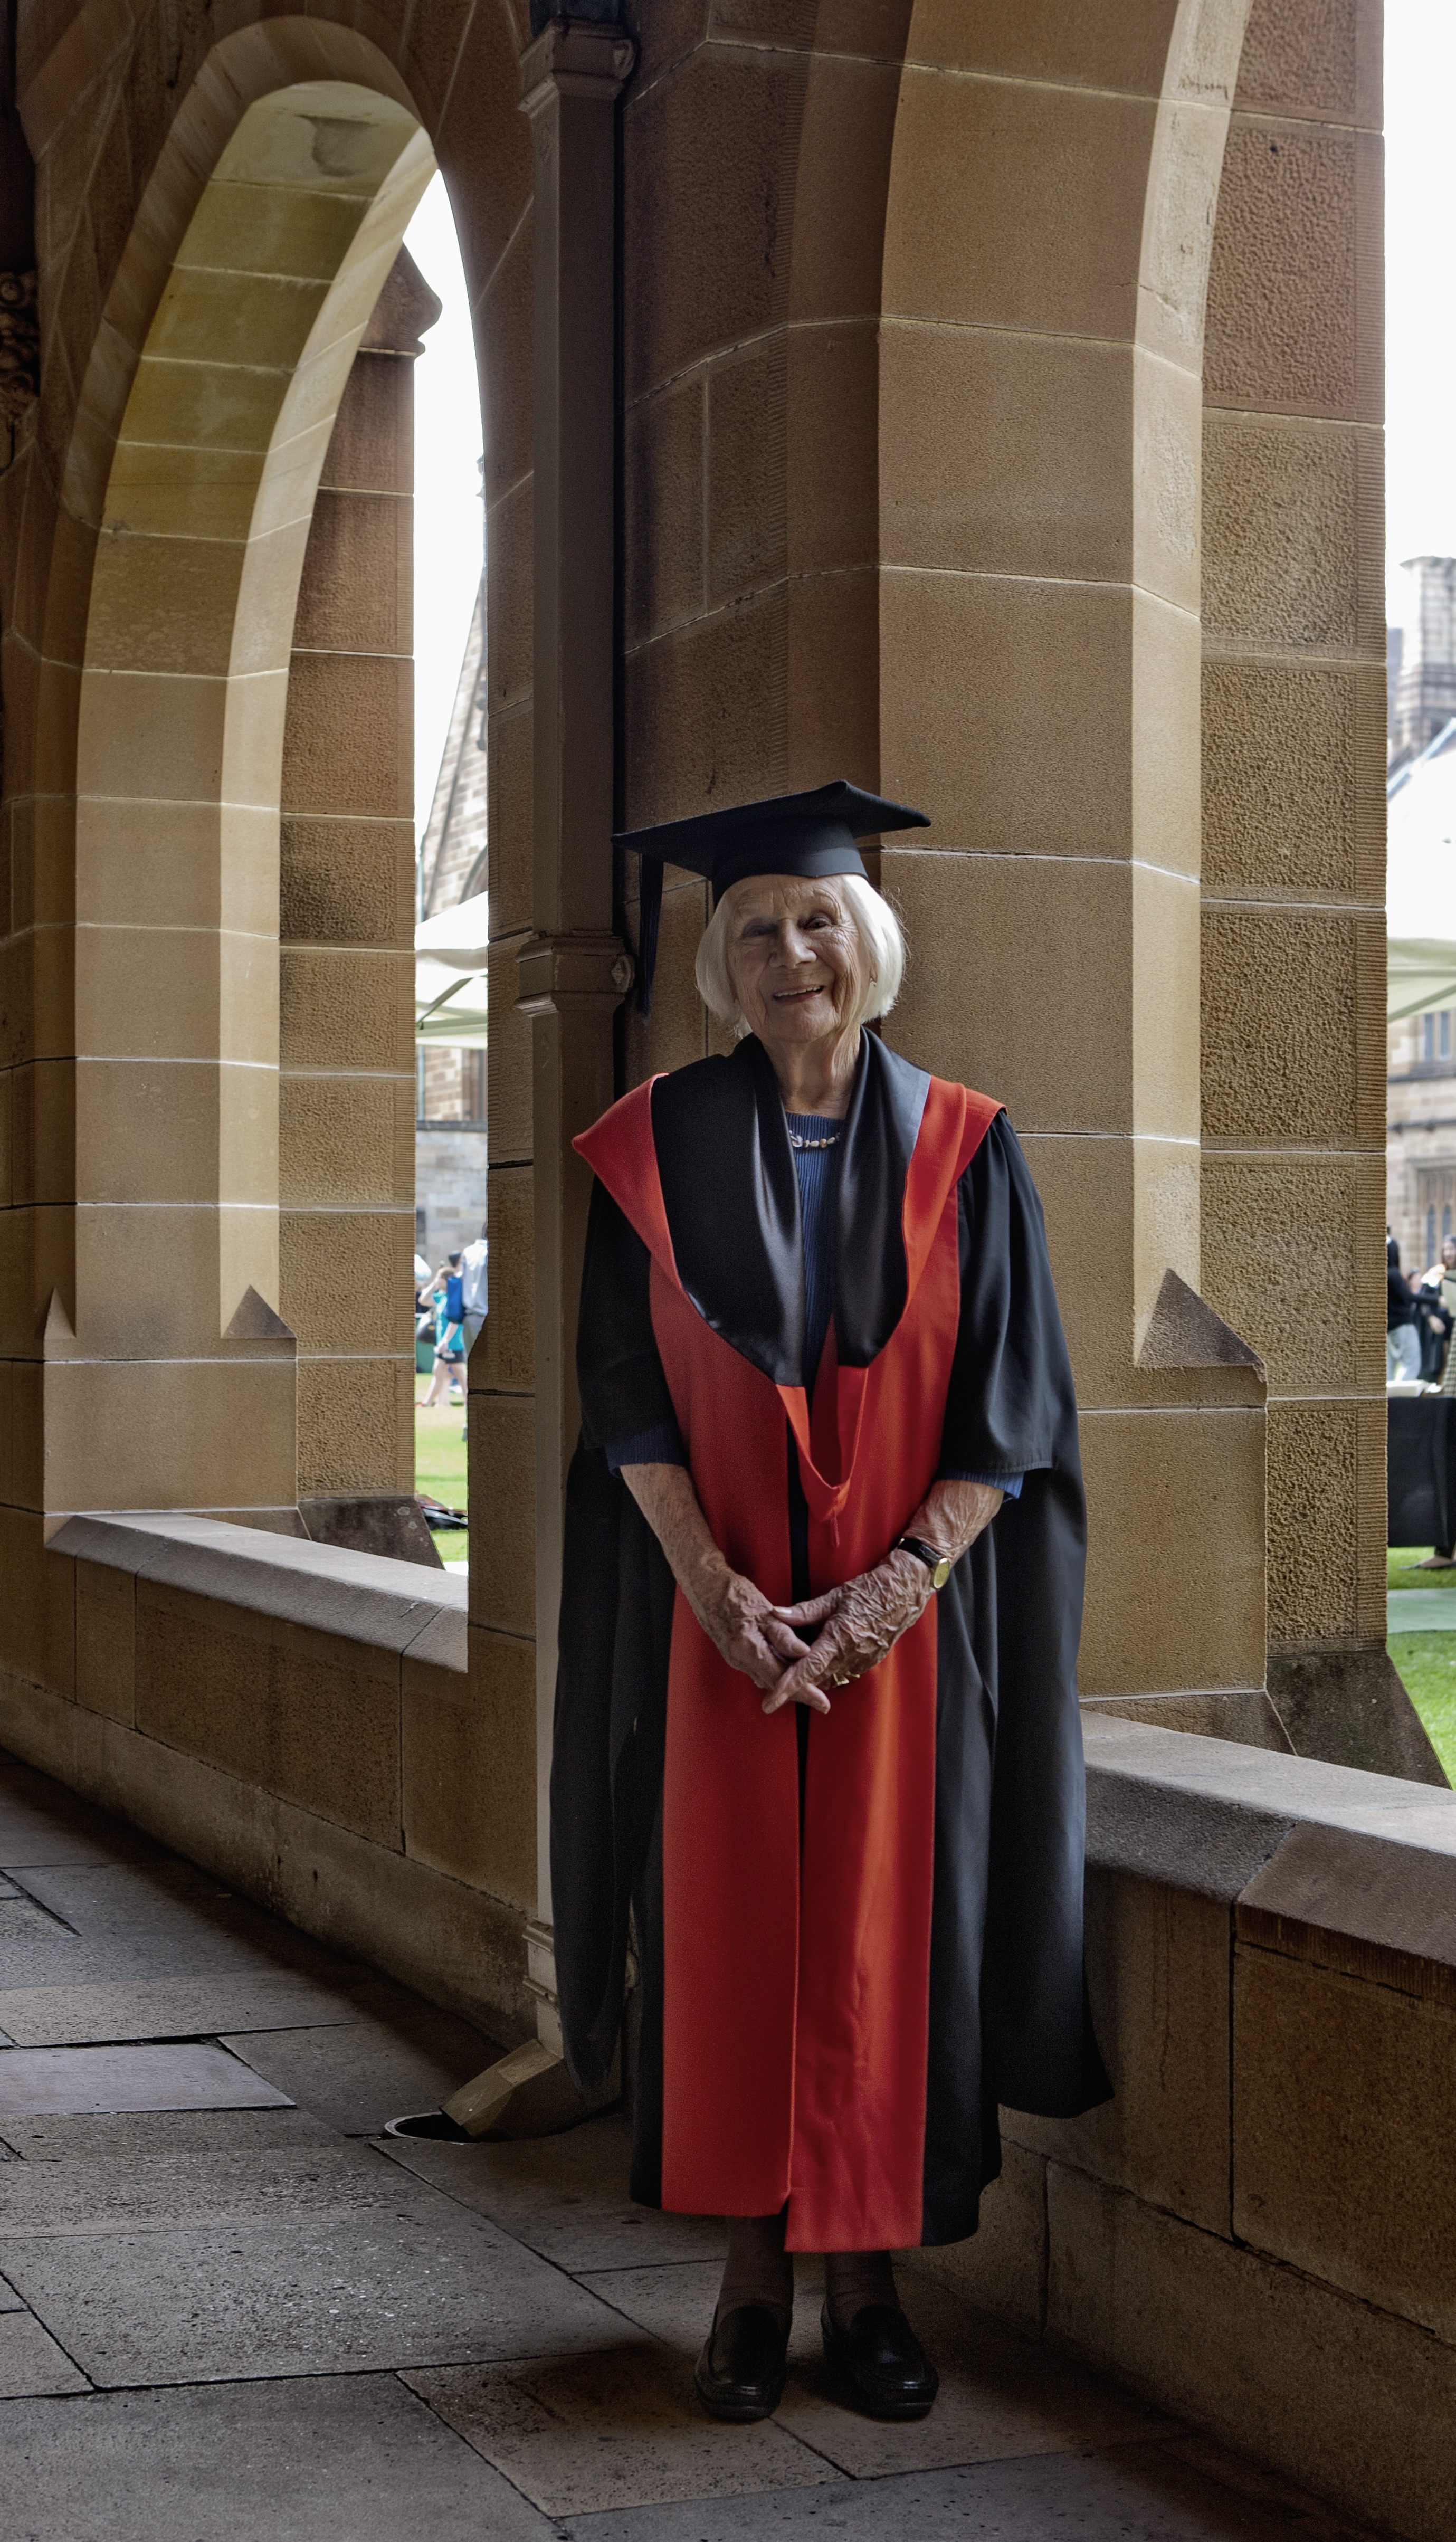 From politics to a PhD: Australia's oldest university graduate